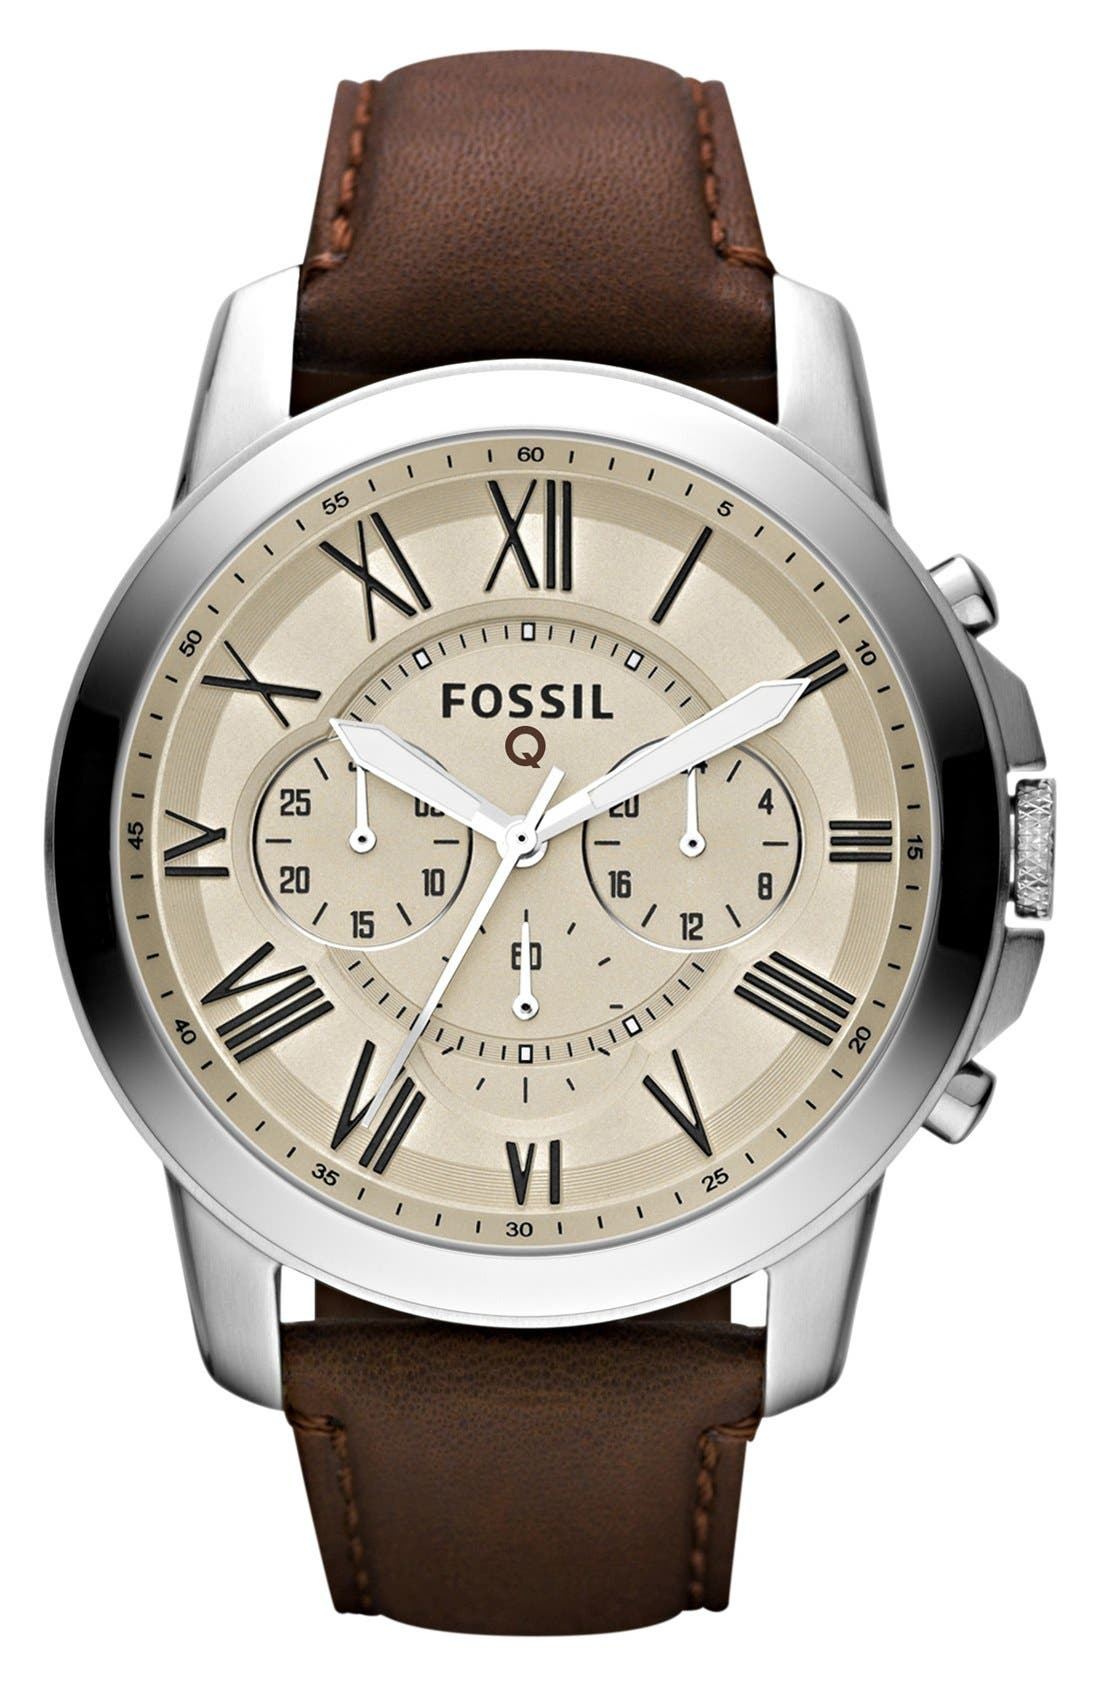 Fossil 'Fossil Q - Grant' Round Chronograph Leather Strap Smart Watch, 44mm,                         Main,                         color, Brown/ Egg Shell